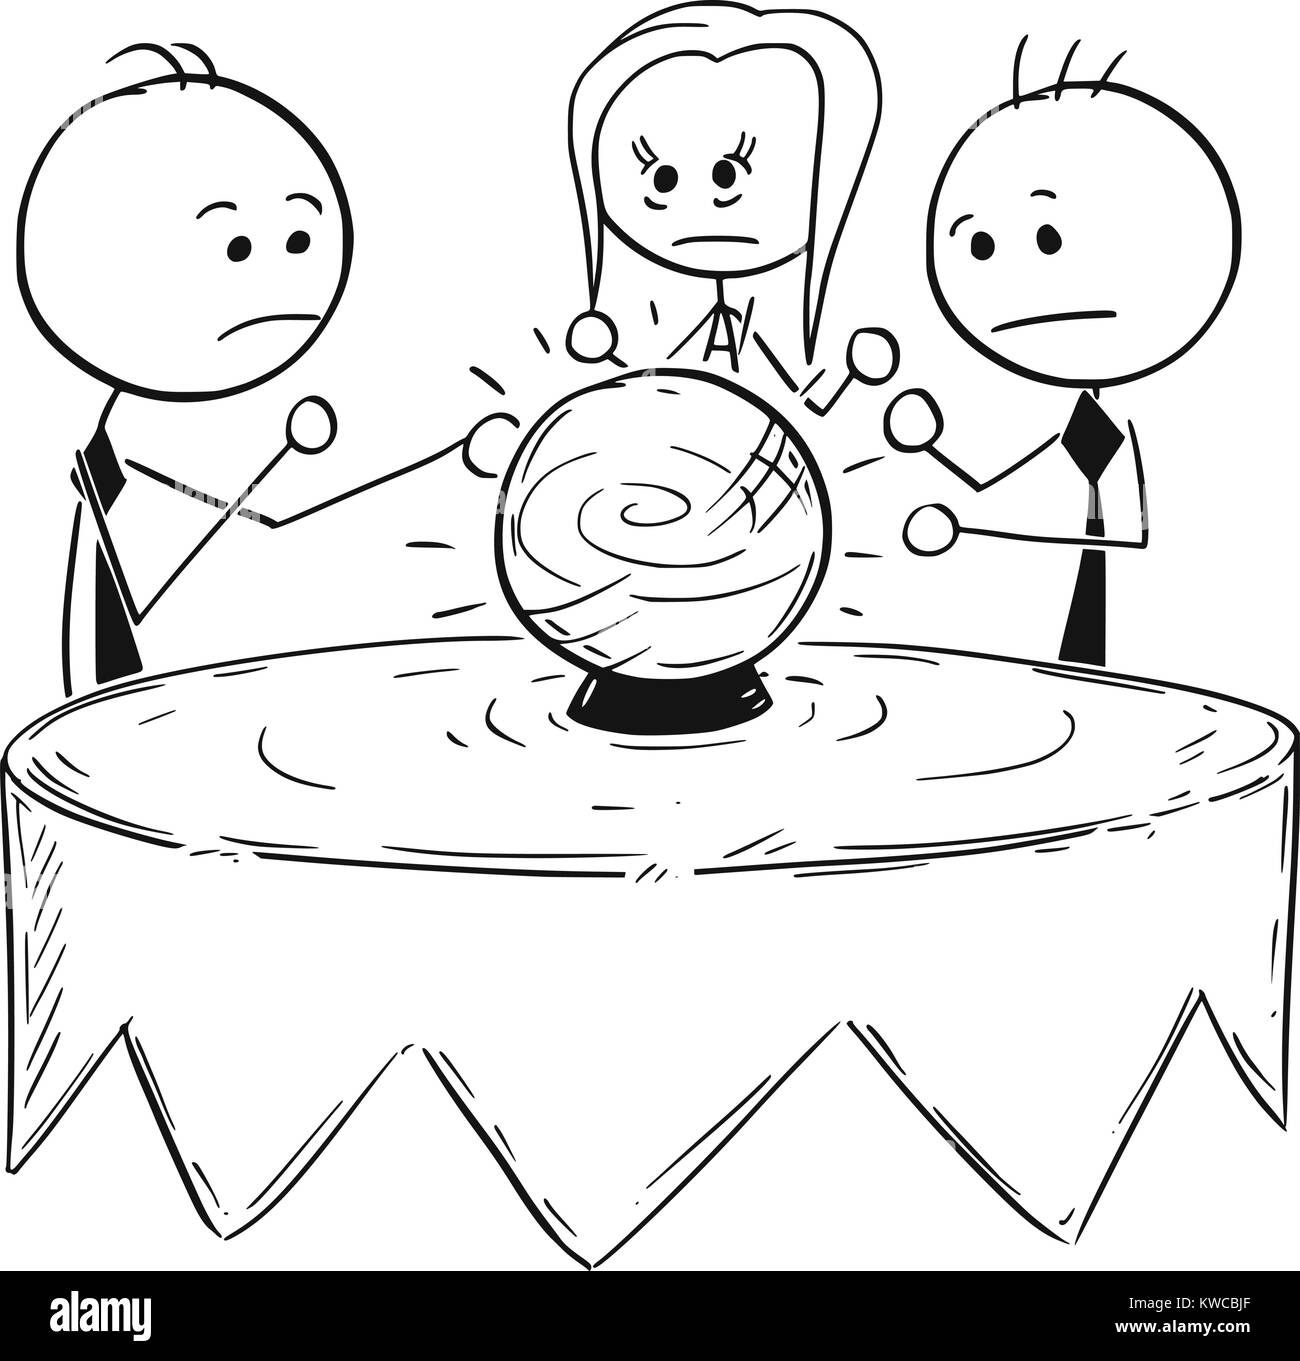 Cartoon stick man concept drawing illustration of business people predict fortune telling market future from the - Stock Image